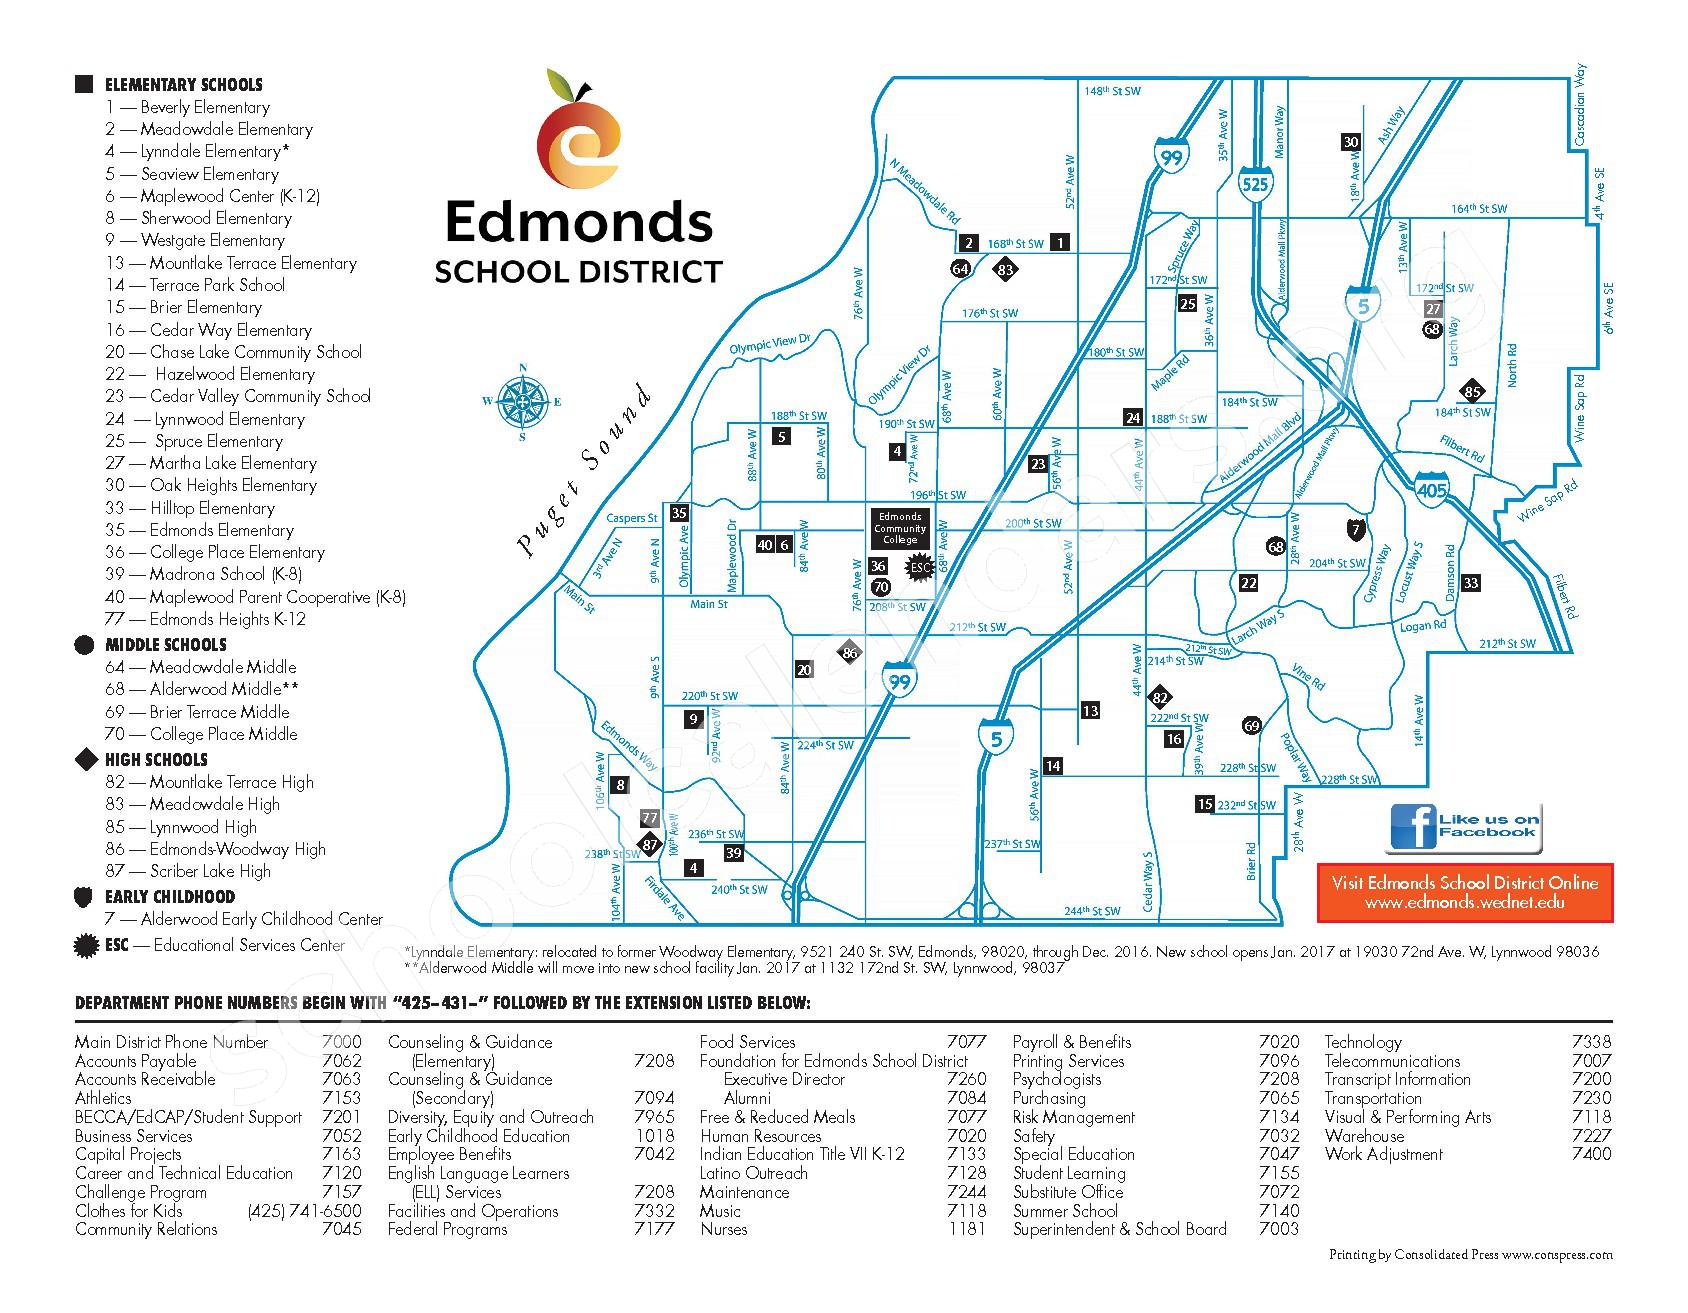 2016 - 2017 ESD Calendar and Parent Handbook – College Place Elementary School – page 42